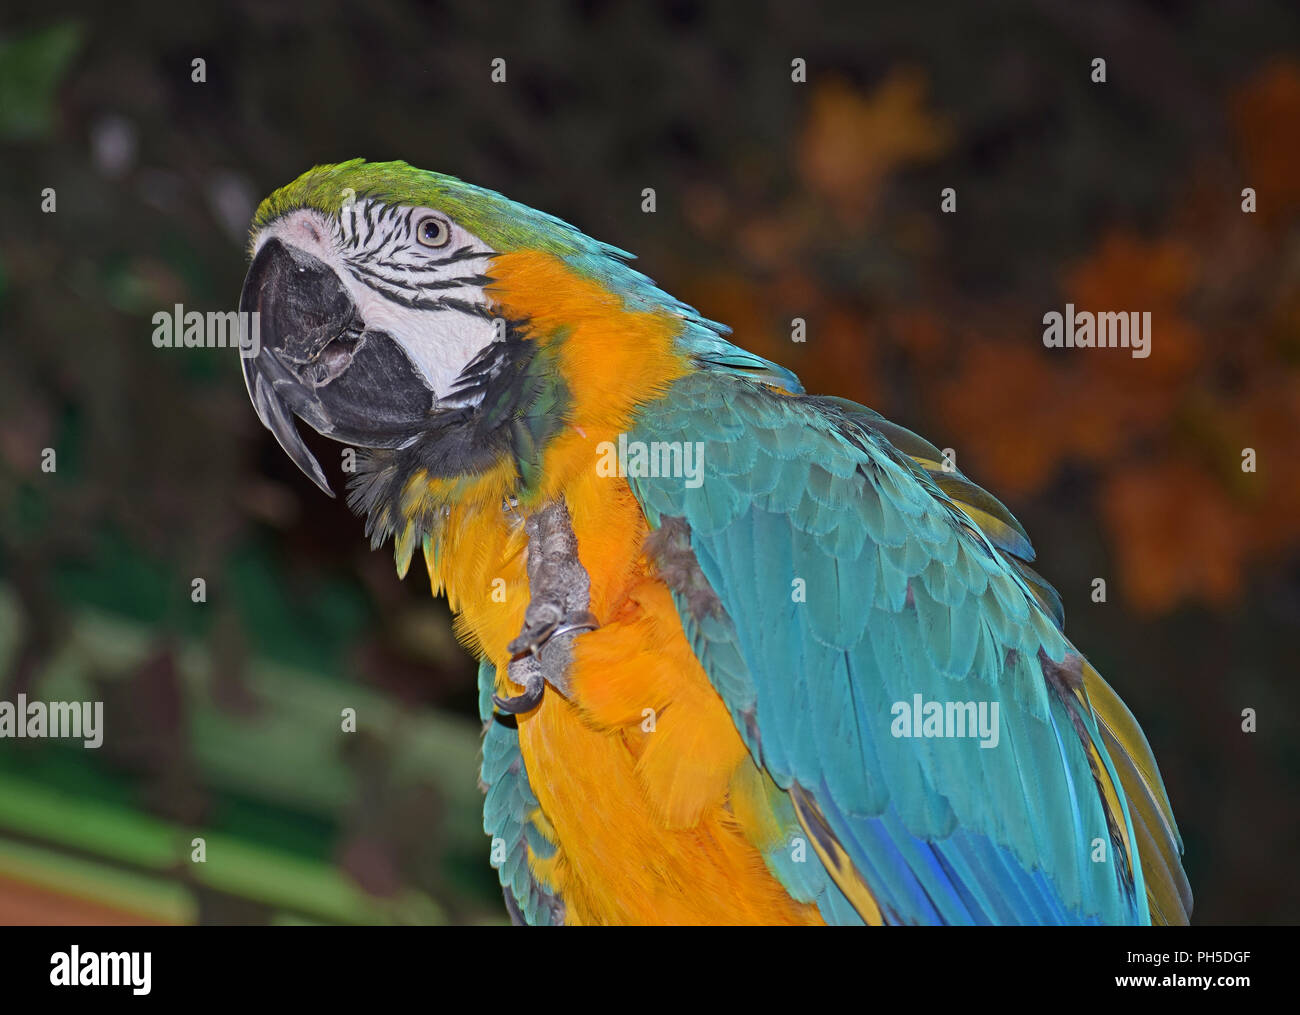 Blue and Yellow Macaw, Sitting on Perch - Stock Image